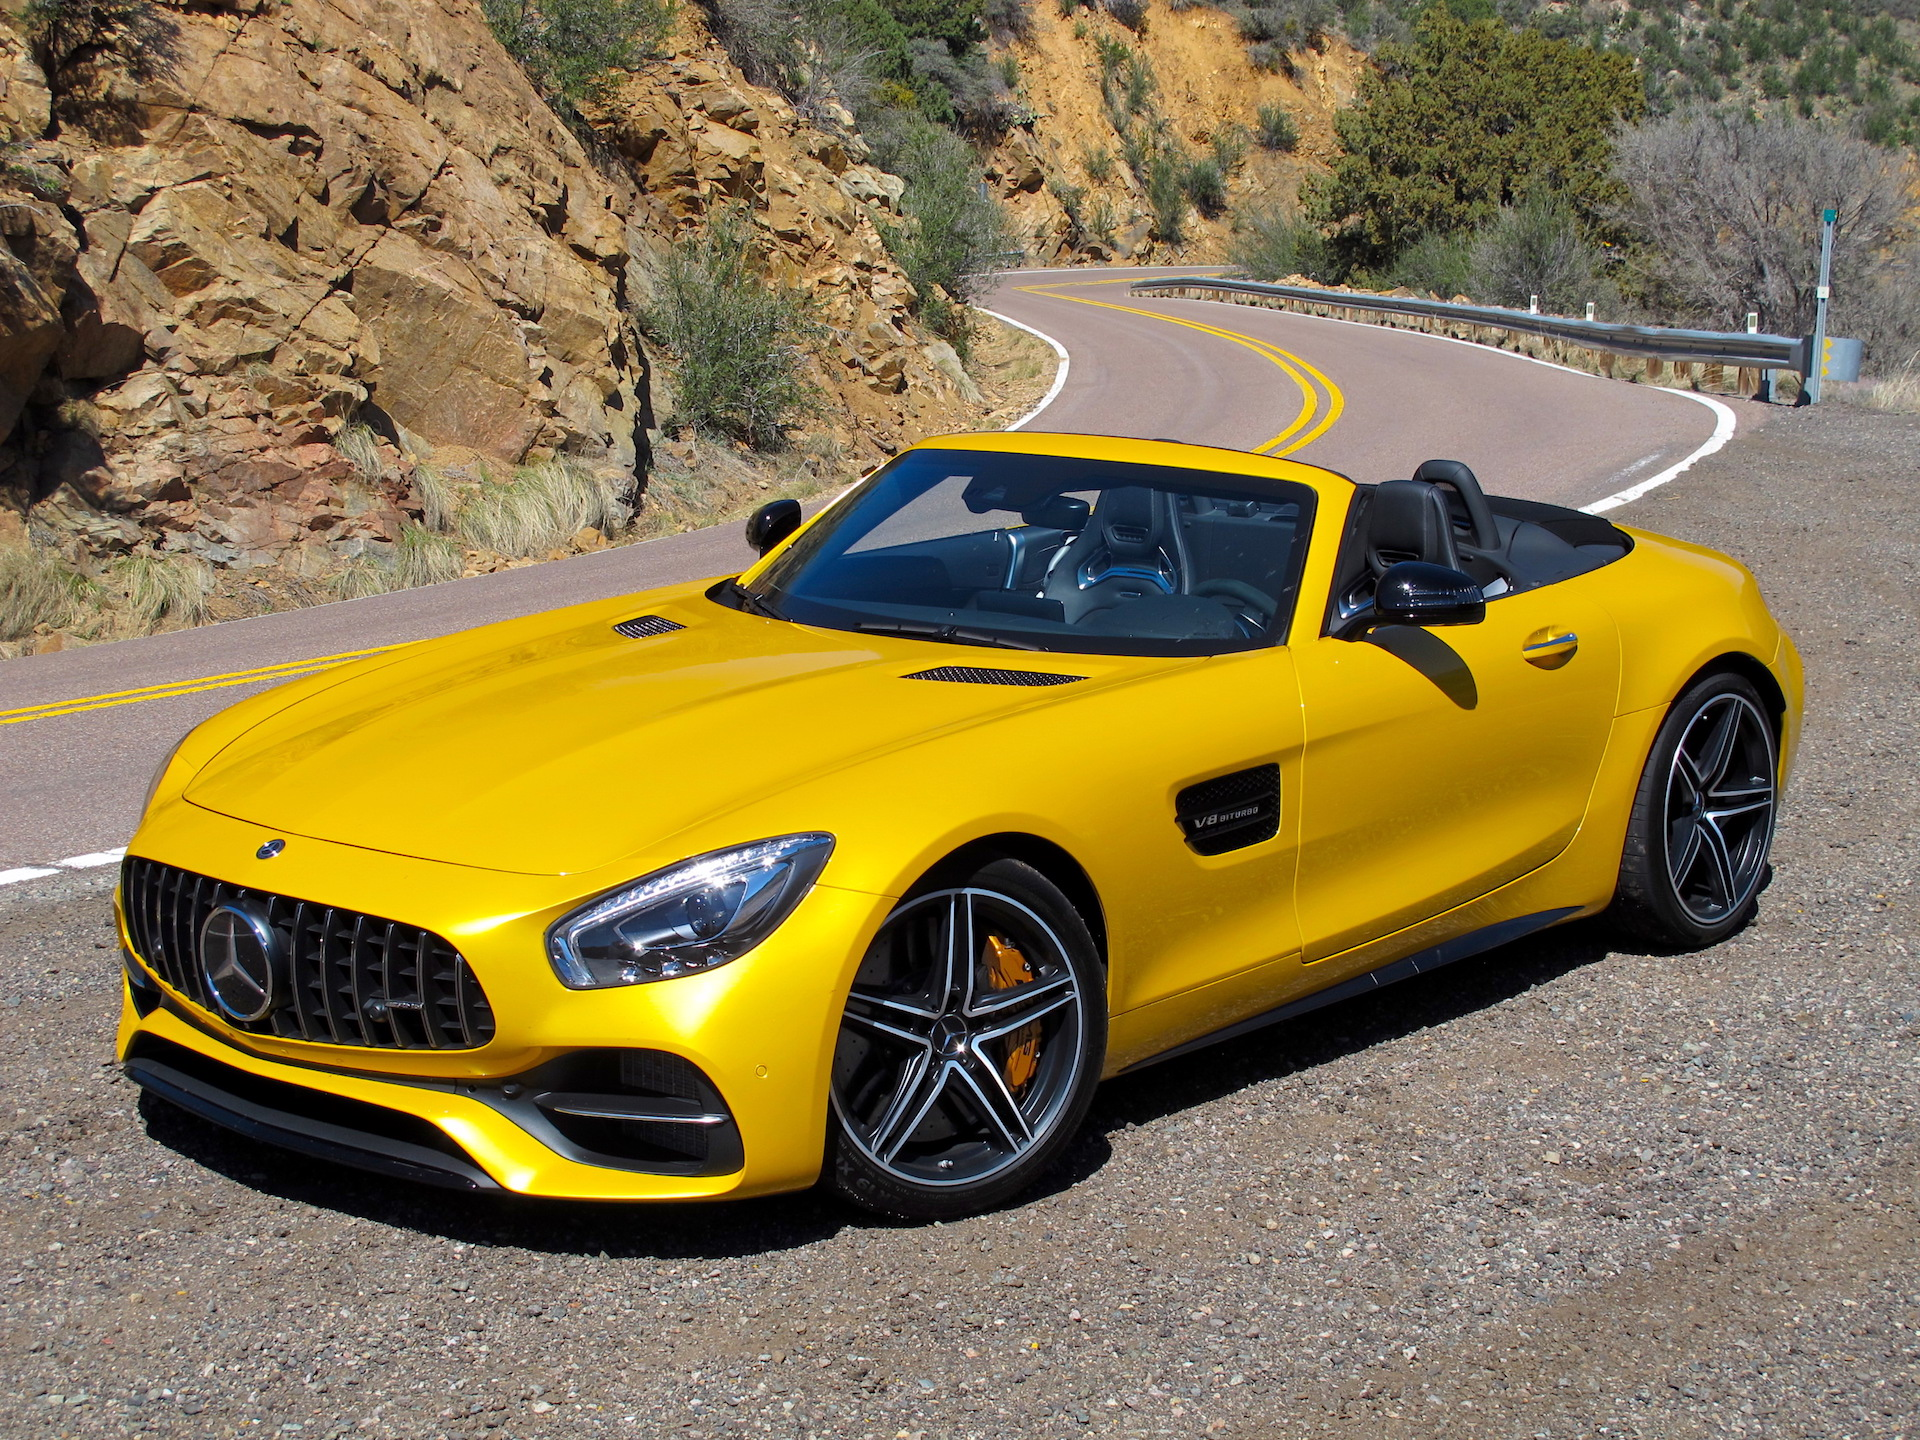 Mercedes Amg Gt C Roadster 2017 2017 Vw Jetta Mercedes Amg Gt C Roadster Driven Mirai Vs Model